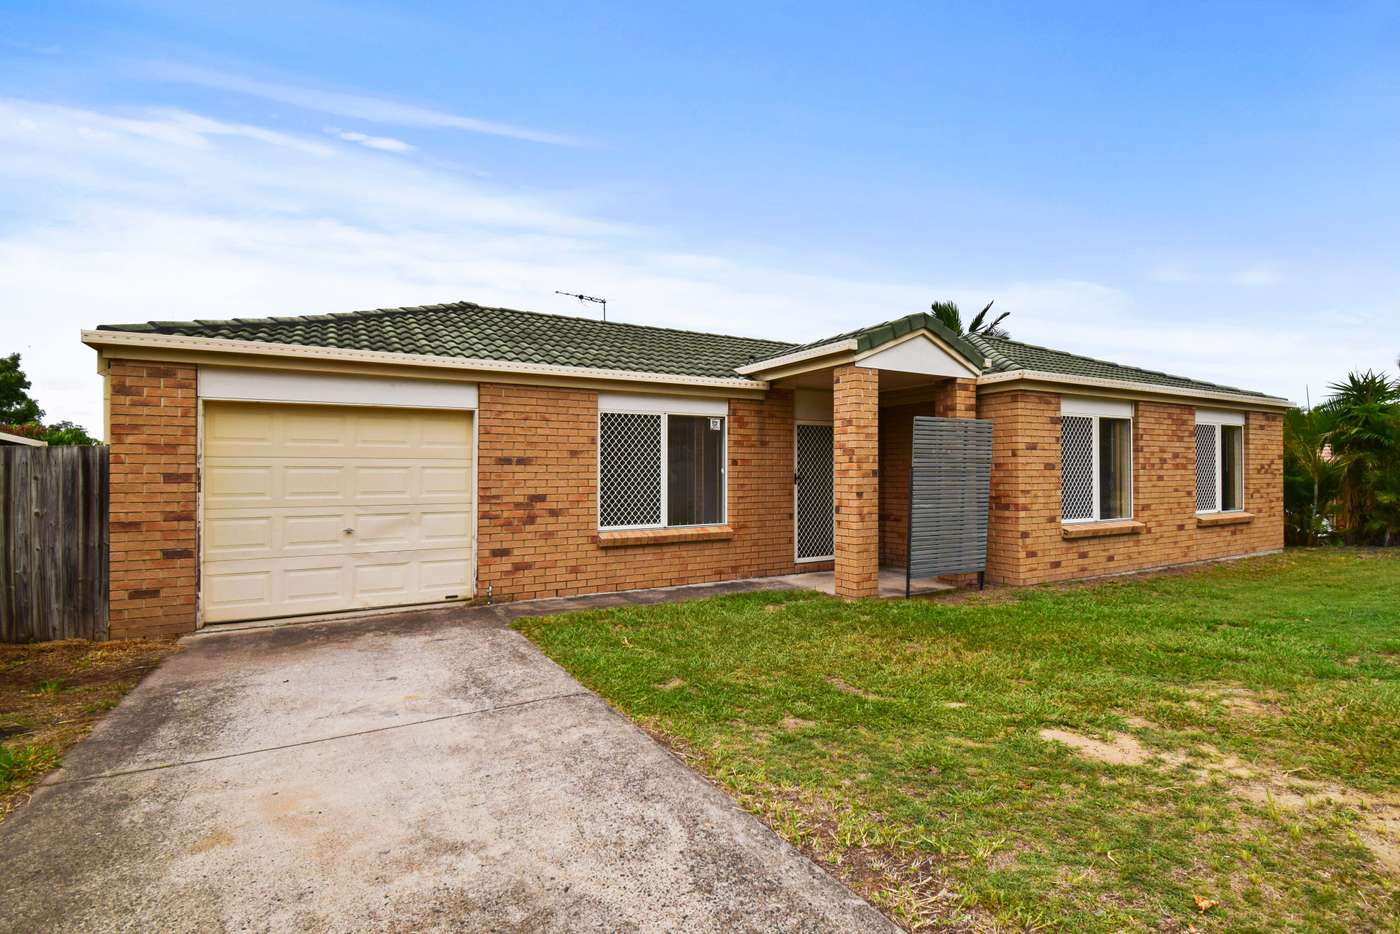 Main view of Homely house listing, 35 Streamview Crescent, Springfield QLD 4300